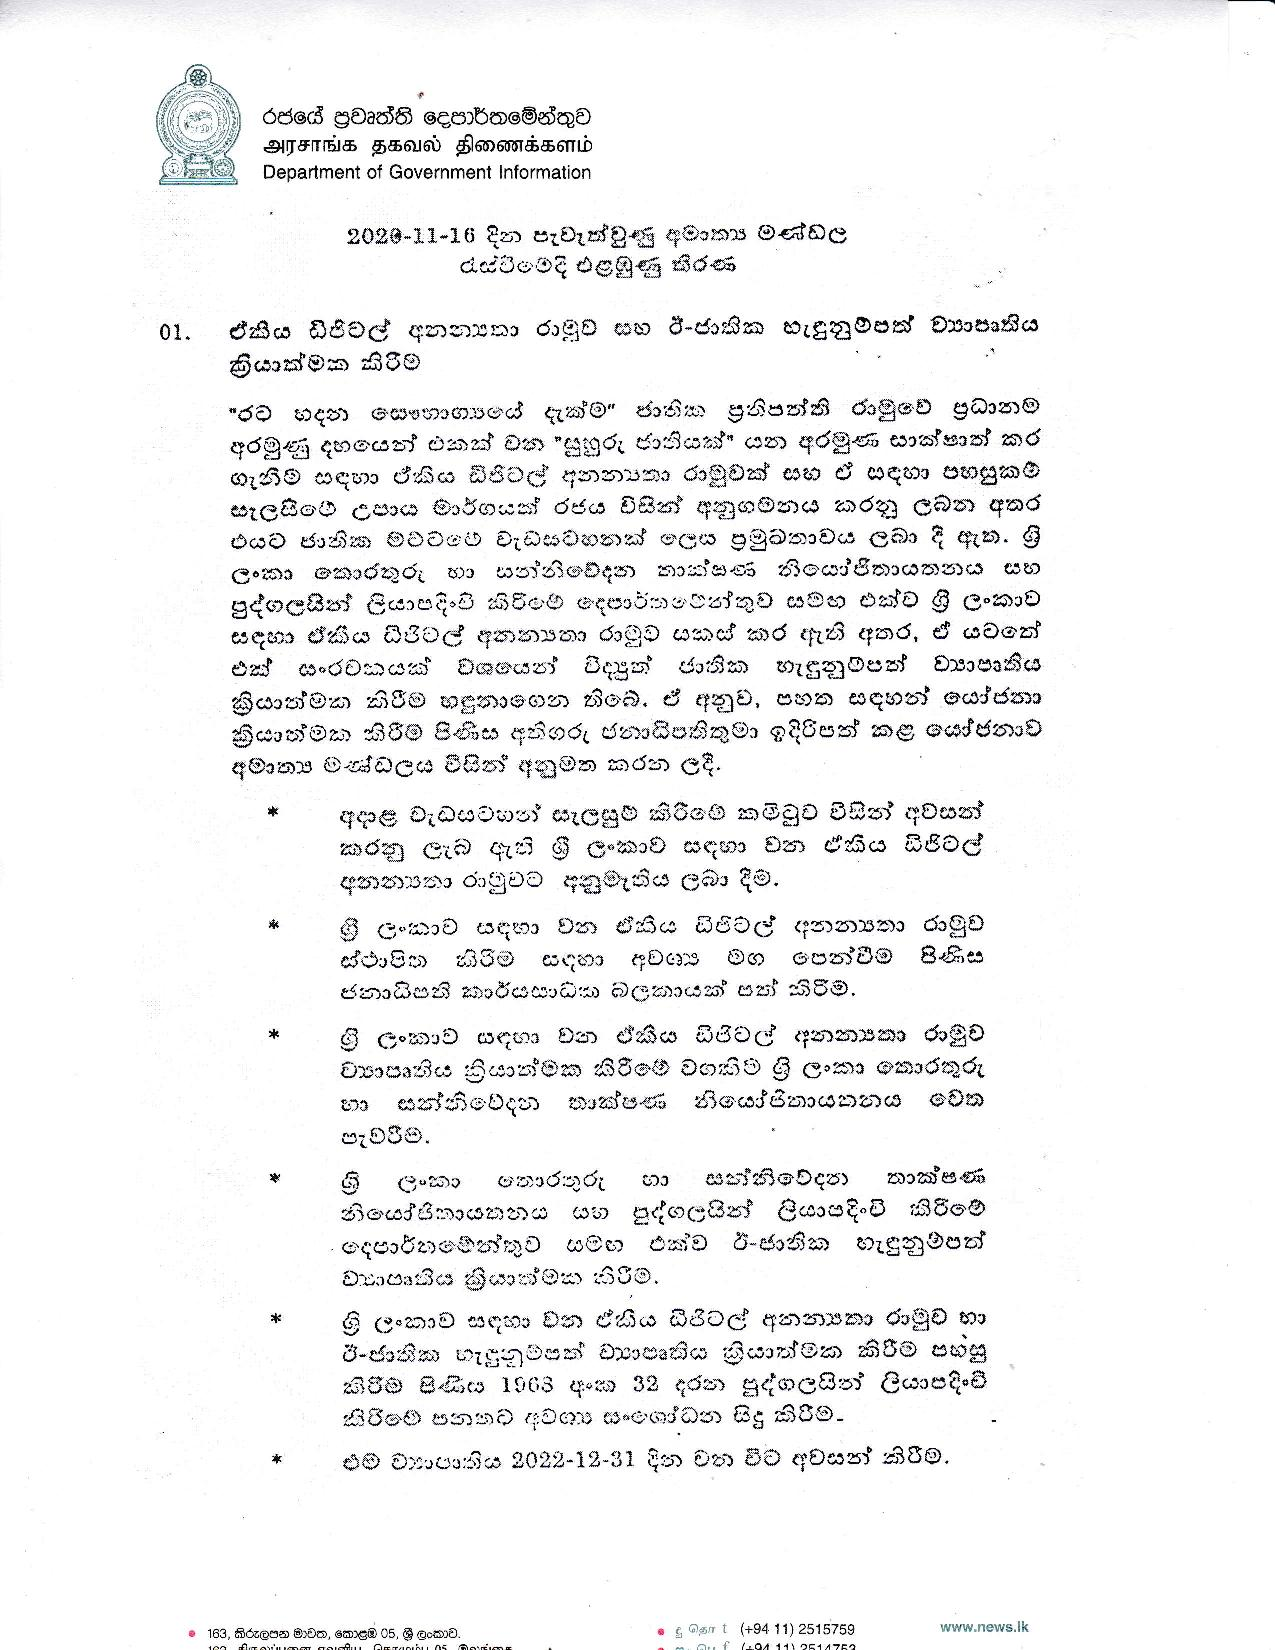 Cabinet Decision on 16.11.2020 page 001